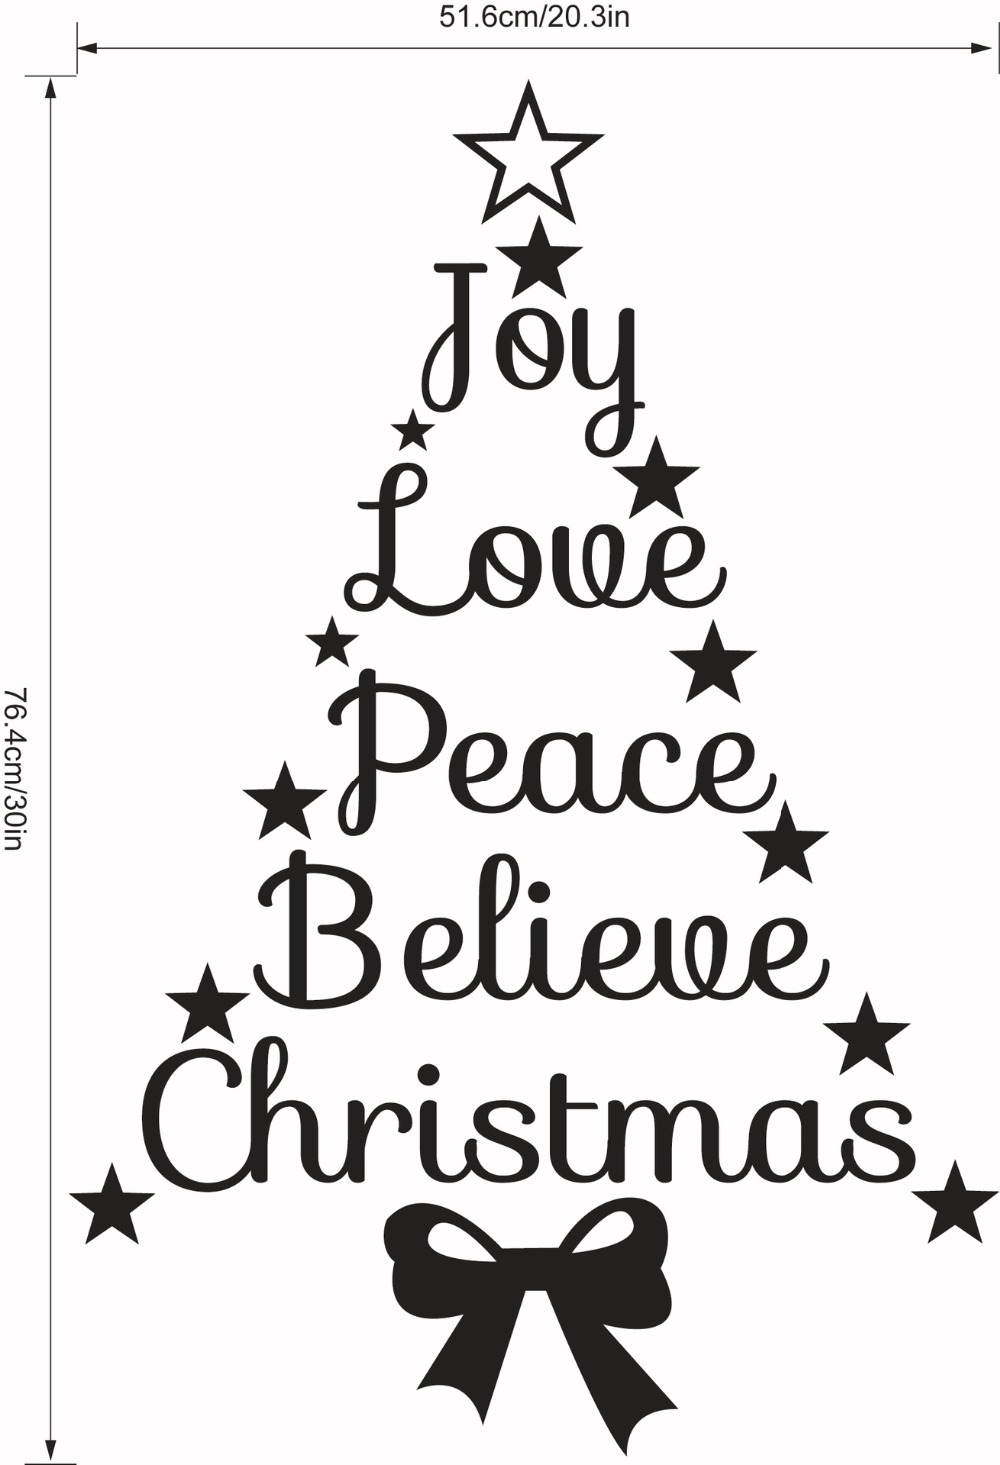 Joy Love Peace Believe Christmas Quotes Stars Wall Decal Merry Christmas  Tree Wall Sticker Vinyl Murals Living Room Wall Art M31 In Wall Stickers  From Home ...